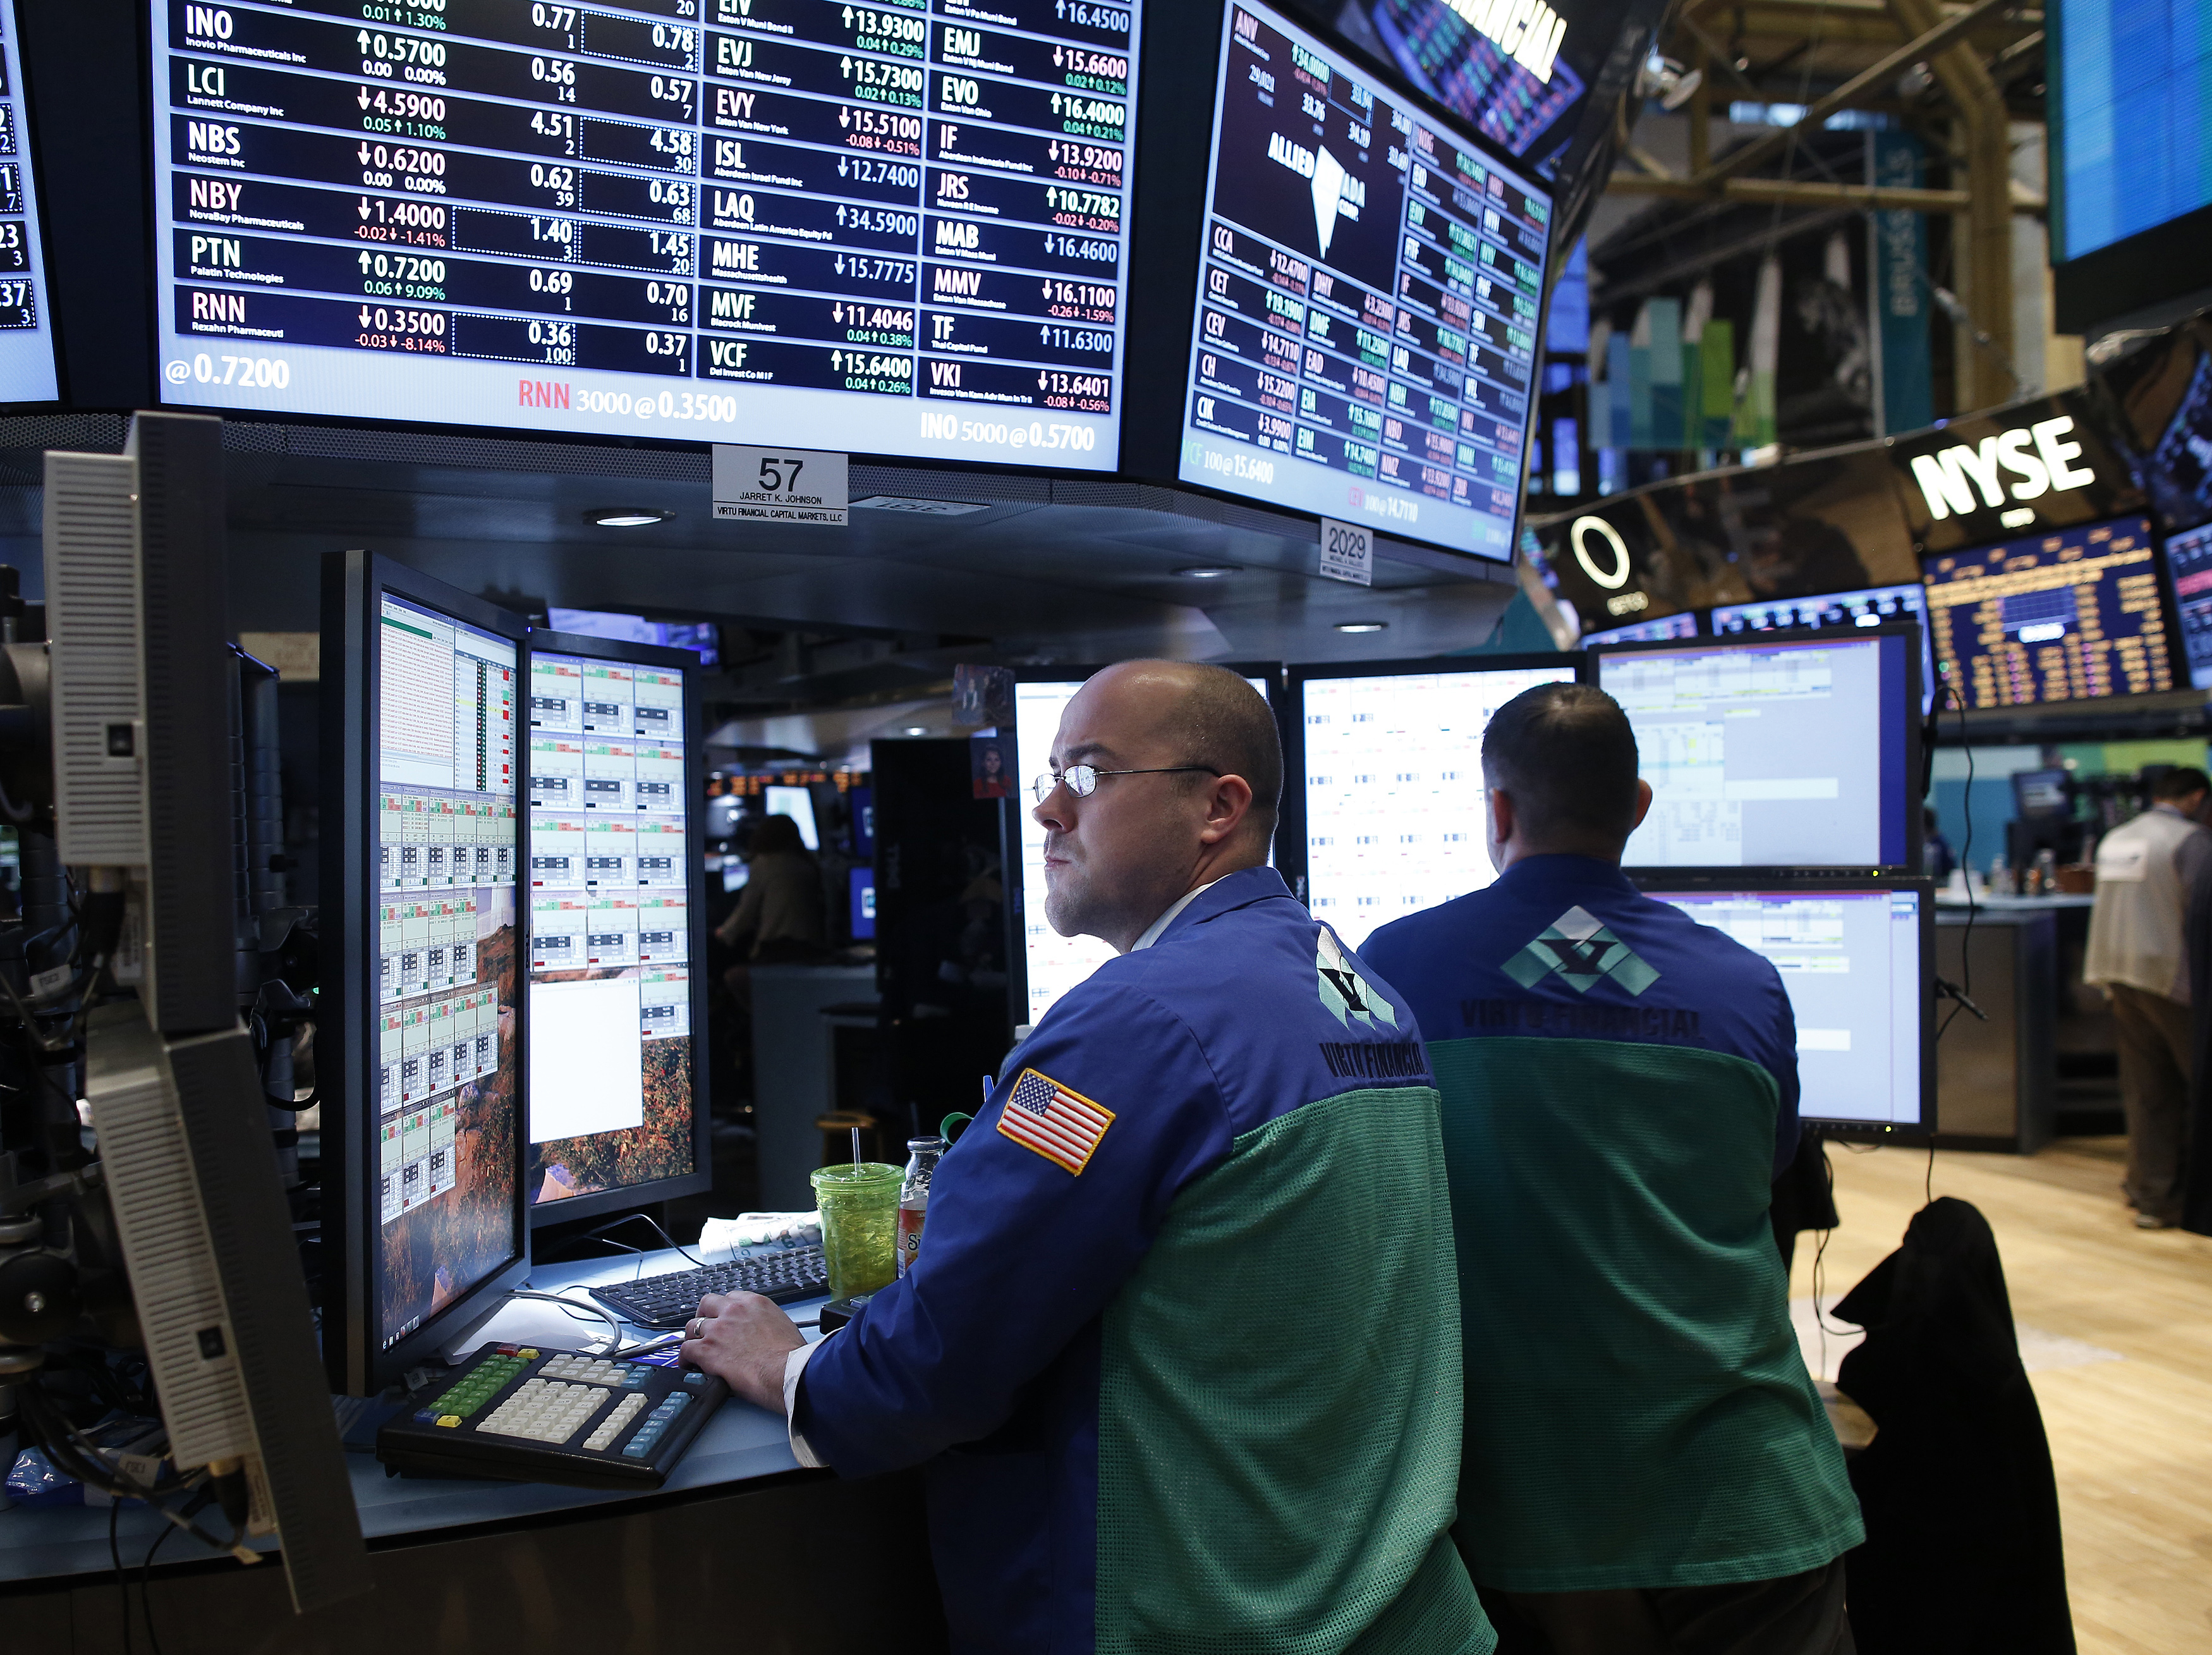 Trader Jarret Johnson of Virtu Finalcial looks at multiple computer monitors while working at a newly renovated section of trading stations on the floor of the New York Stock Exchange